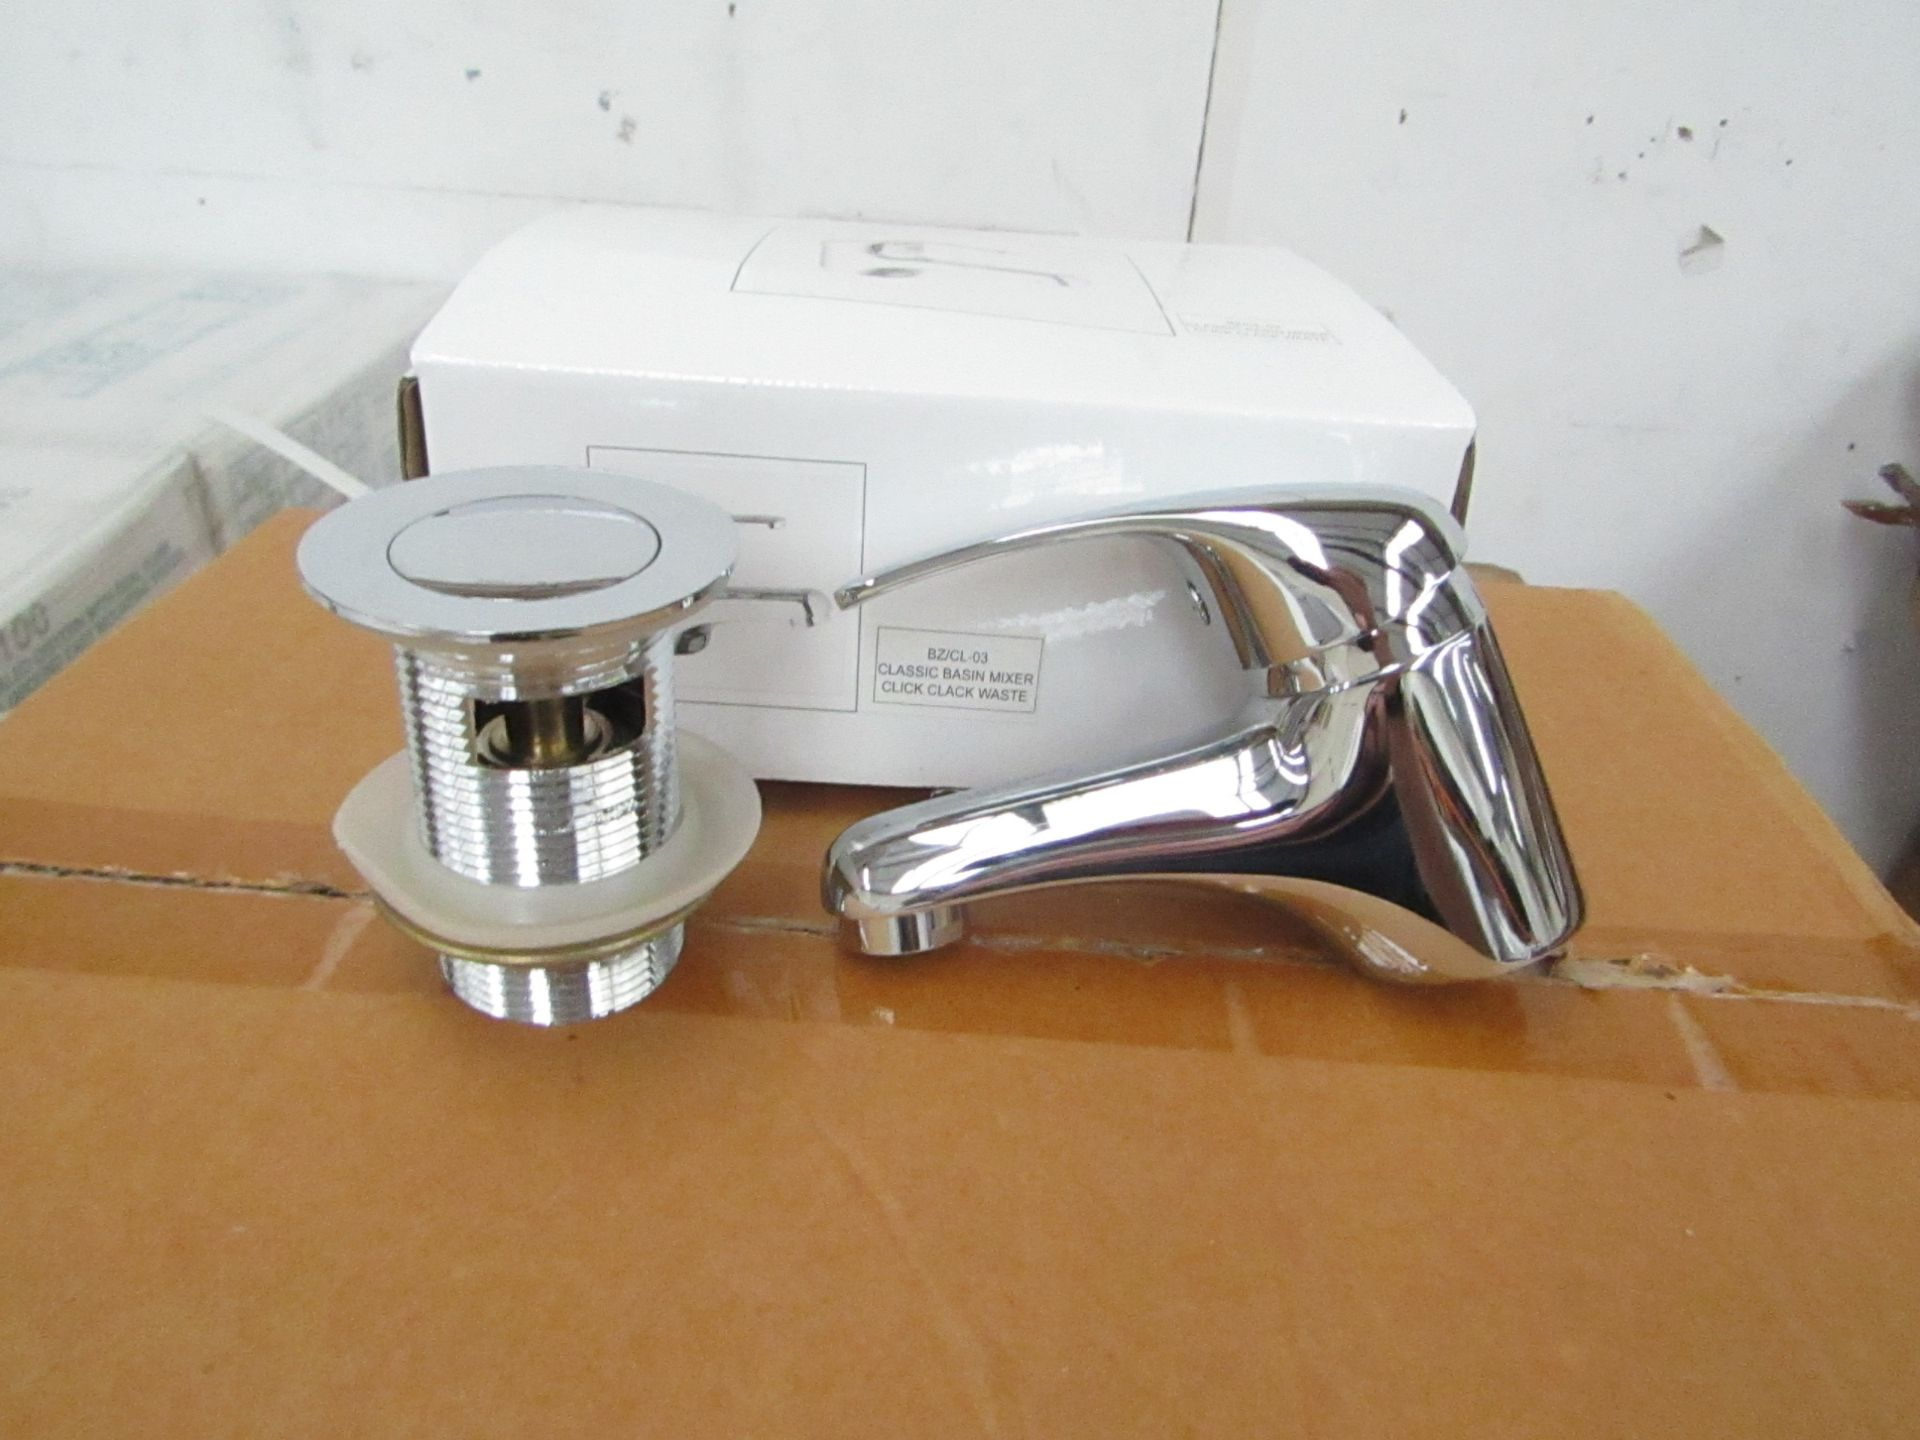 Classic Mono Block chrome plated Basin Mixer tap with chrome plated brass handle, includes click